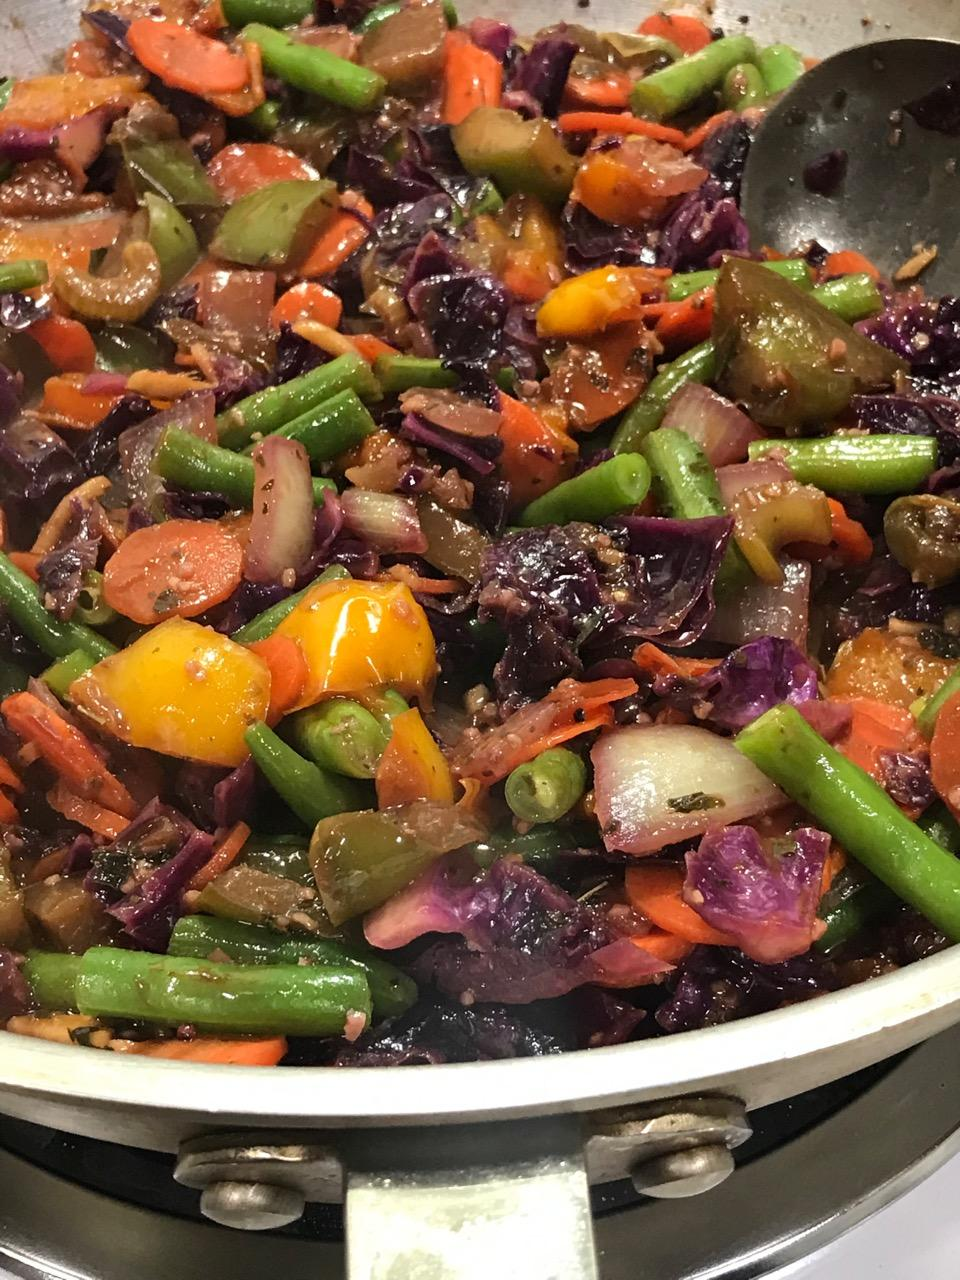 RED CABBAGE AND GREEN BEAN SAUTE